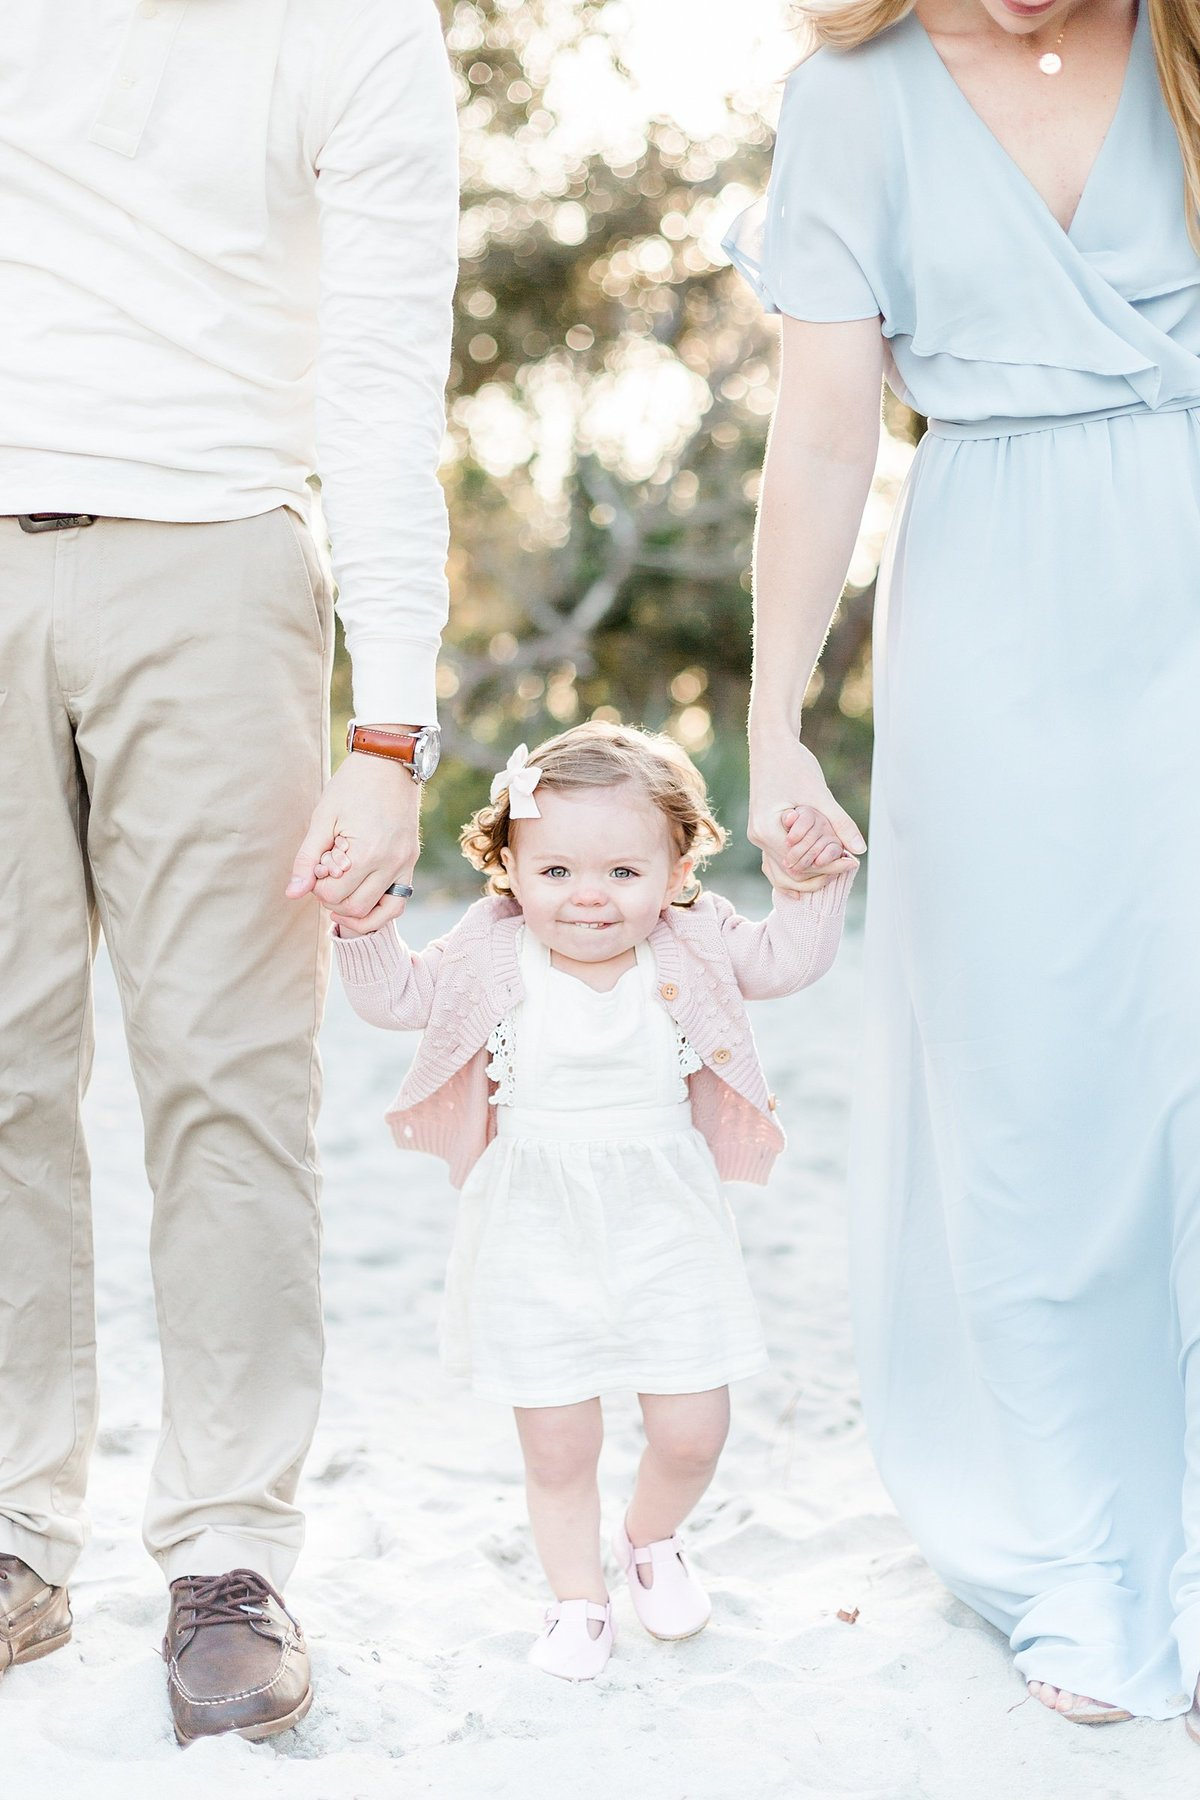 Charleston-Family-Photographer-Folly-Beach-Photographer-Beach-Photography-Charleston-Family-Session-15